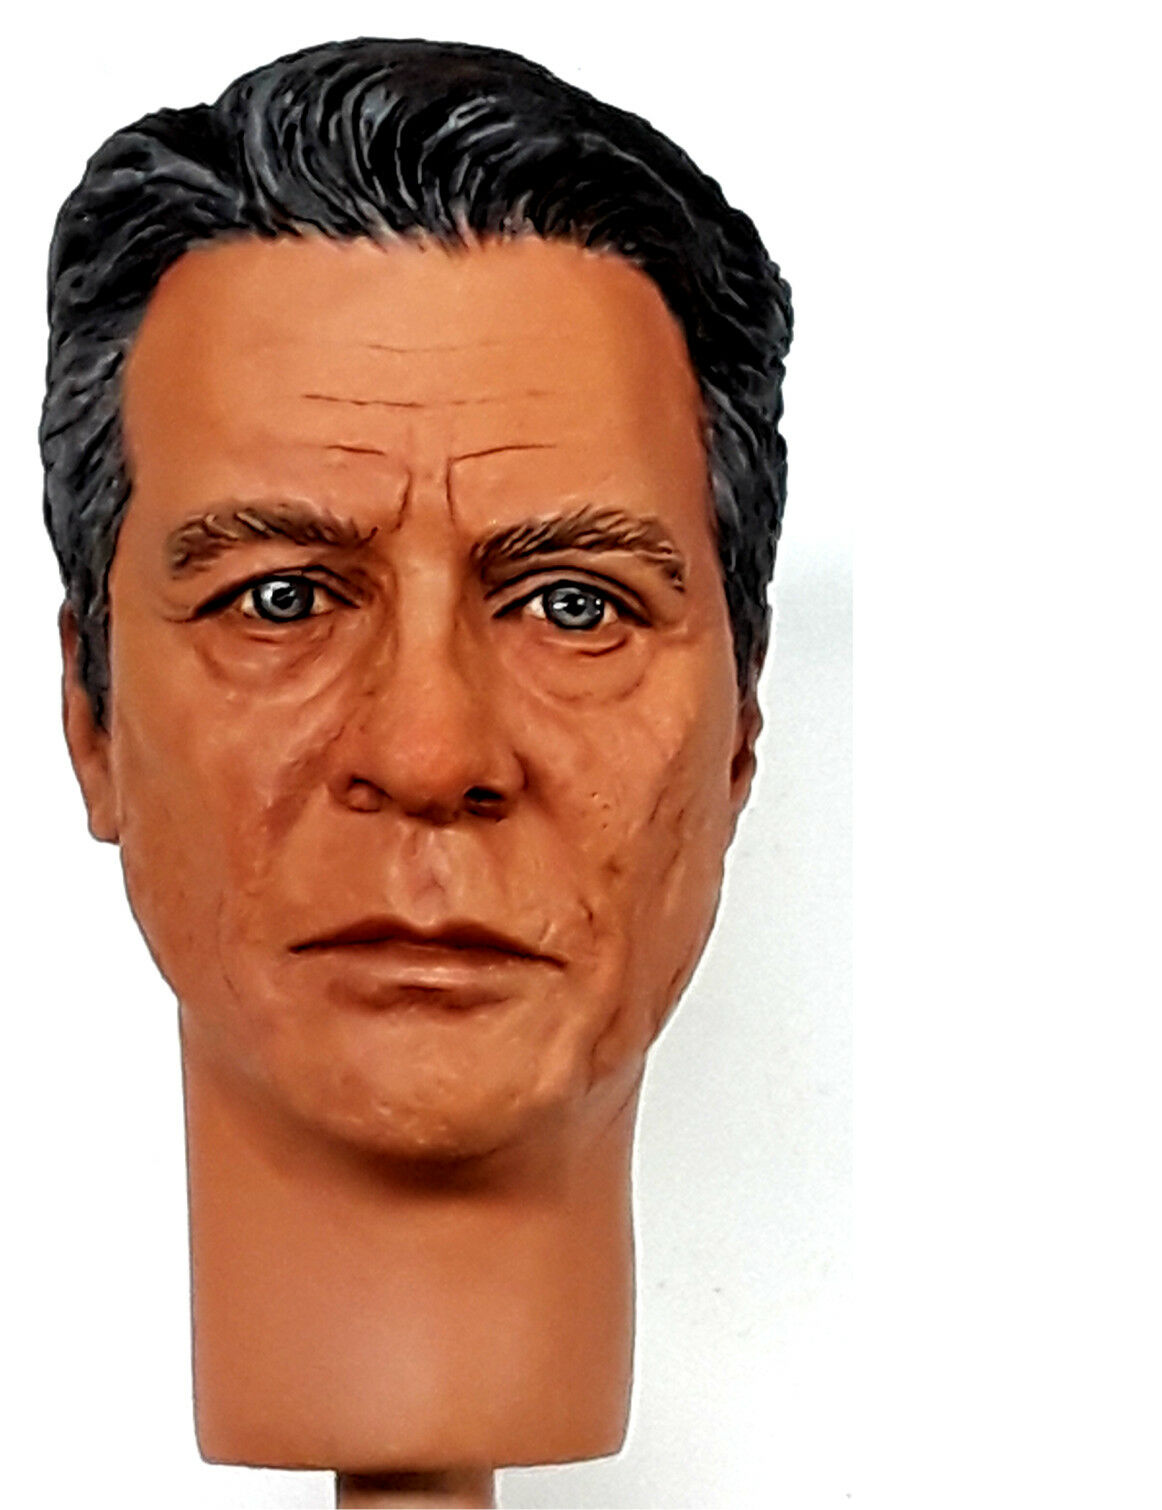 1:6 Custom Portrait of Edward James Olmos as William Adama from the new BSG